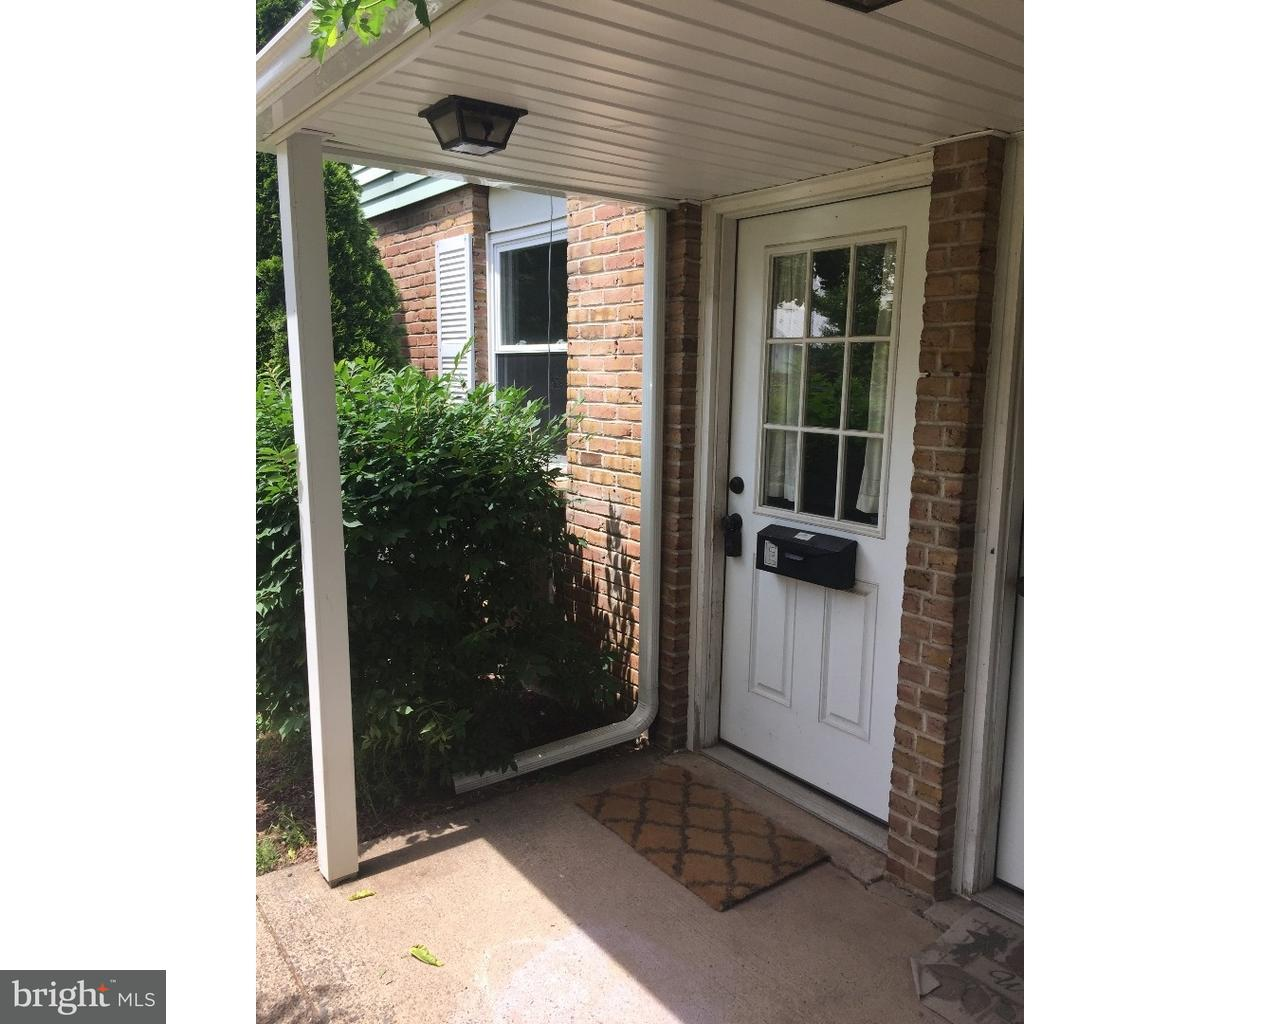 108 S HELLERTOWN AVE, QUAKERTOWN - Listed at $890, QUAKERTOWN